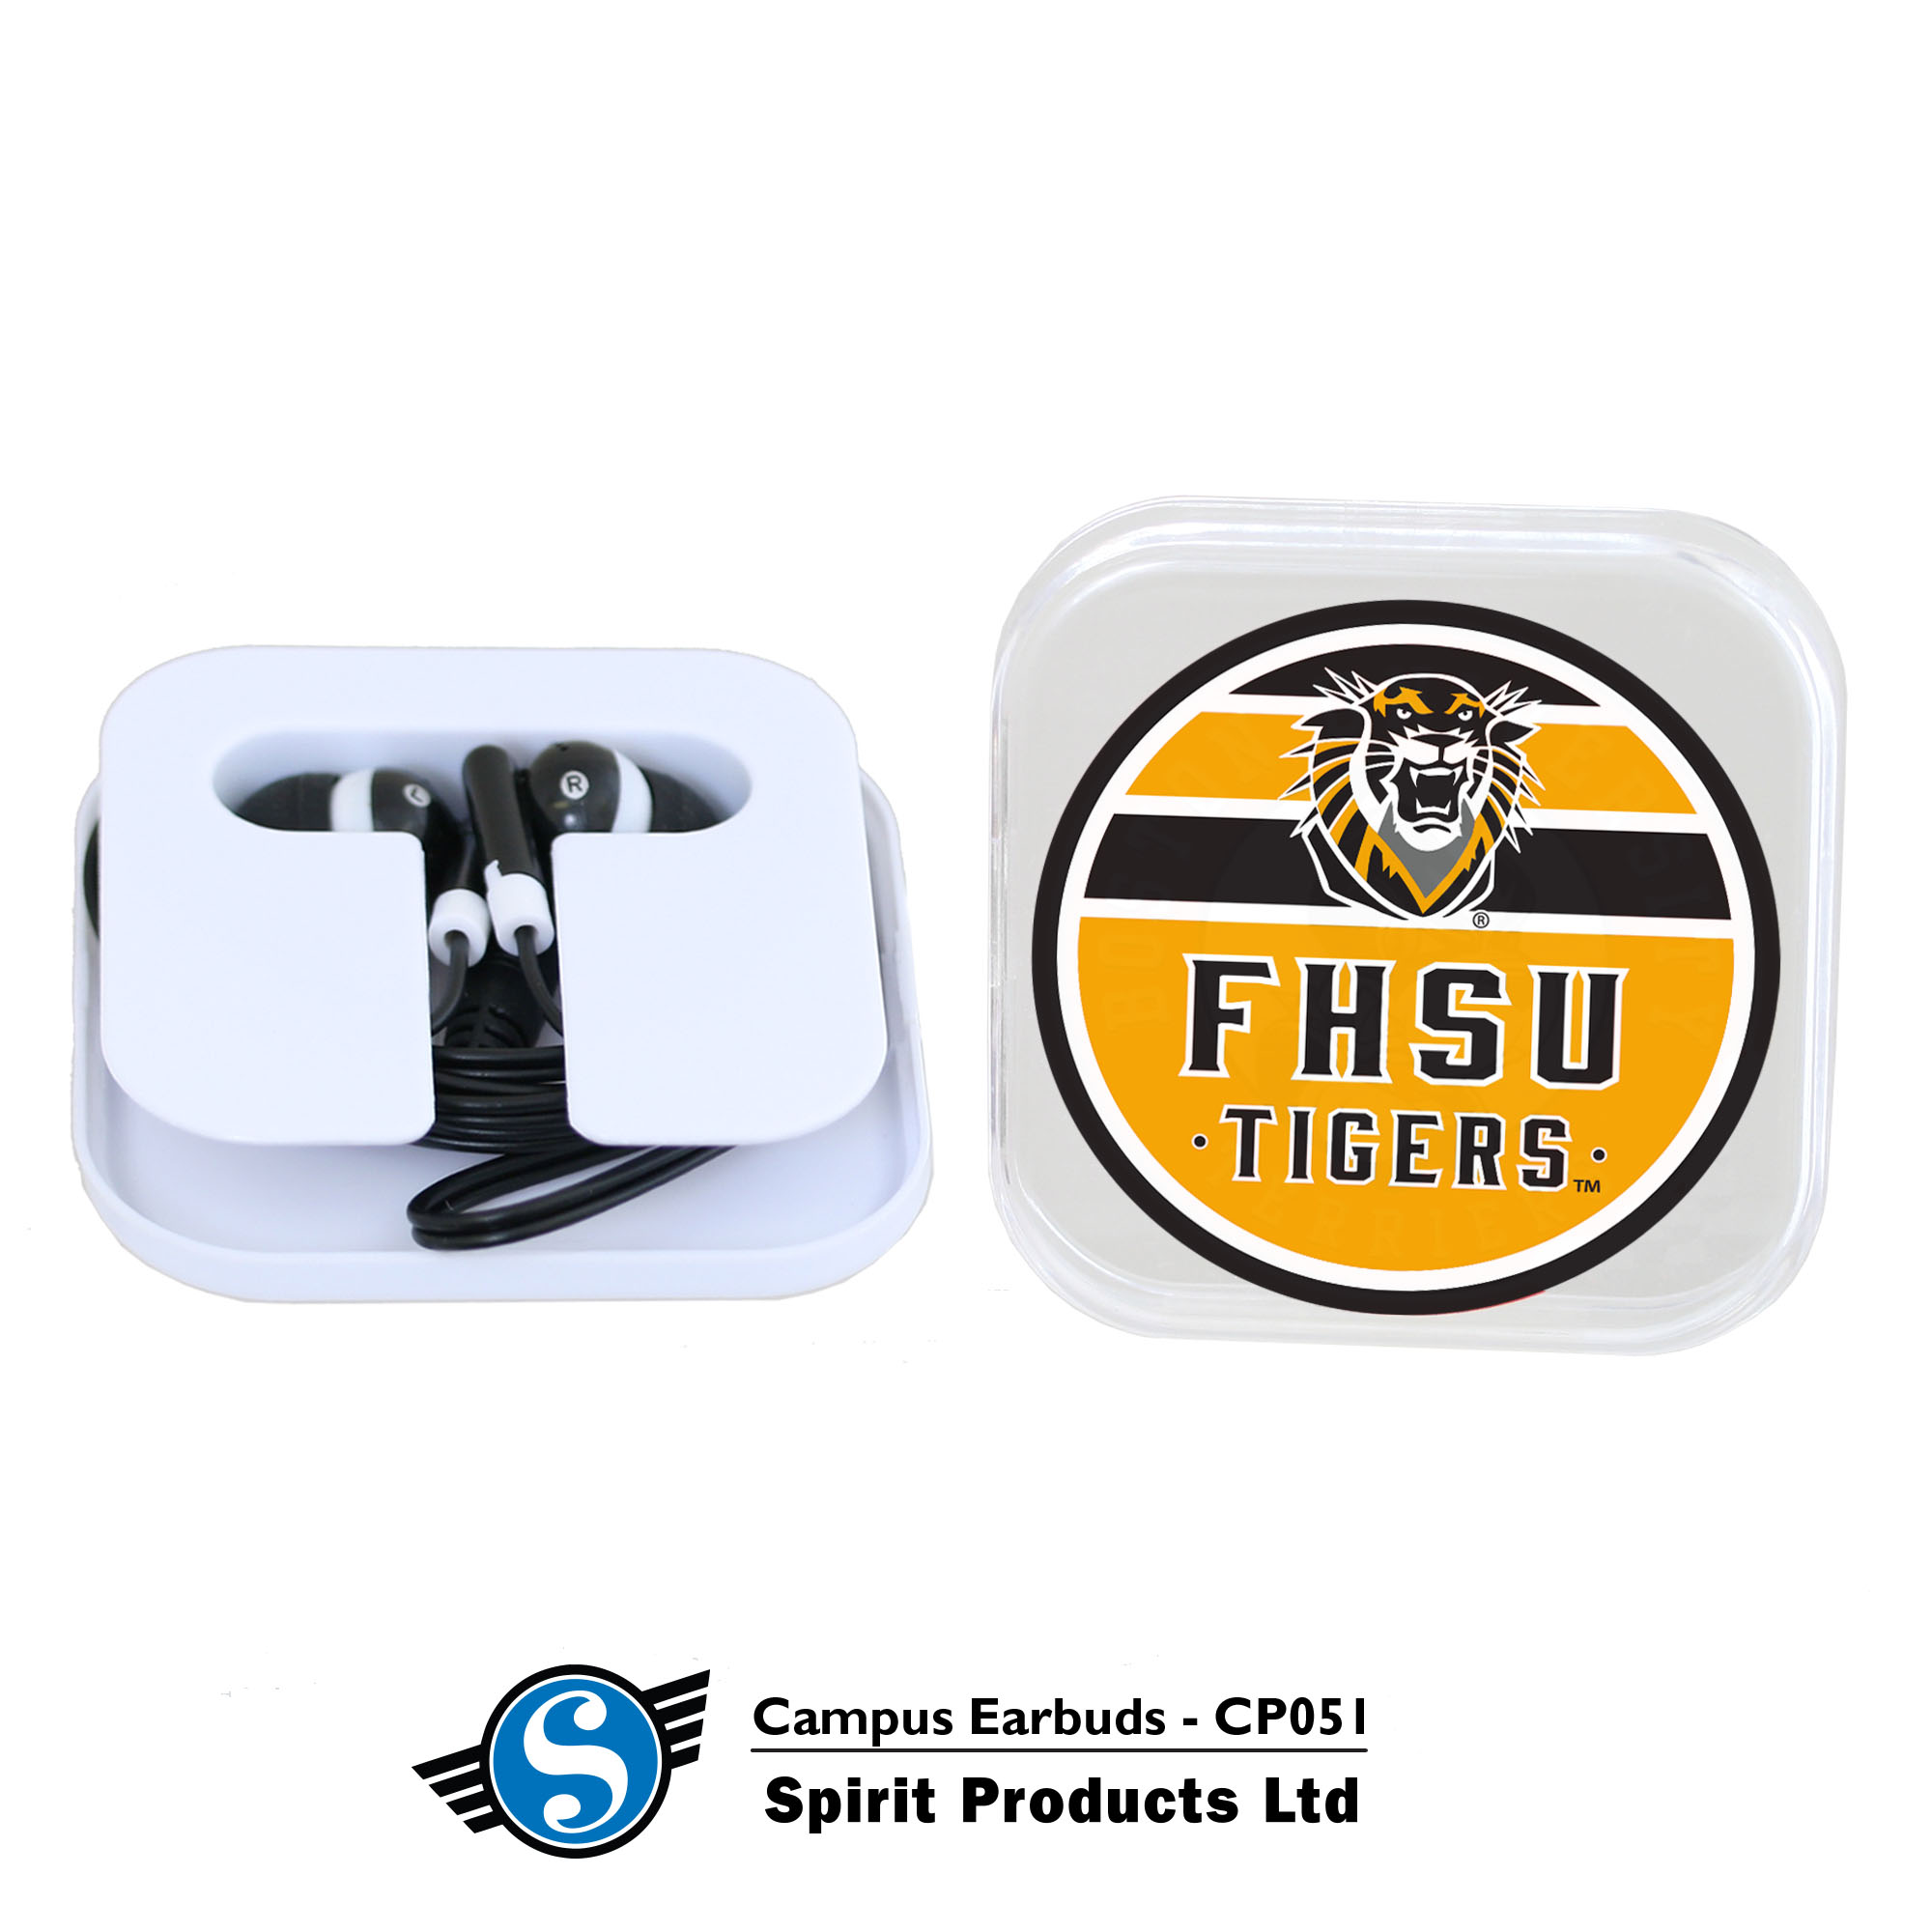 Image for the FHSU Campus Earbuds, Spirit Products product